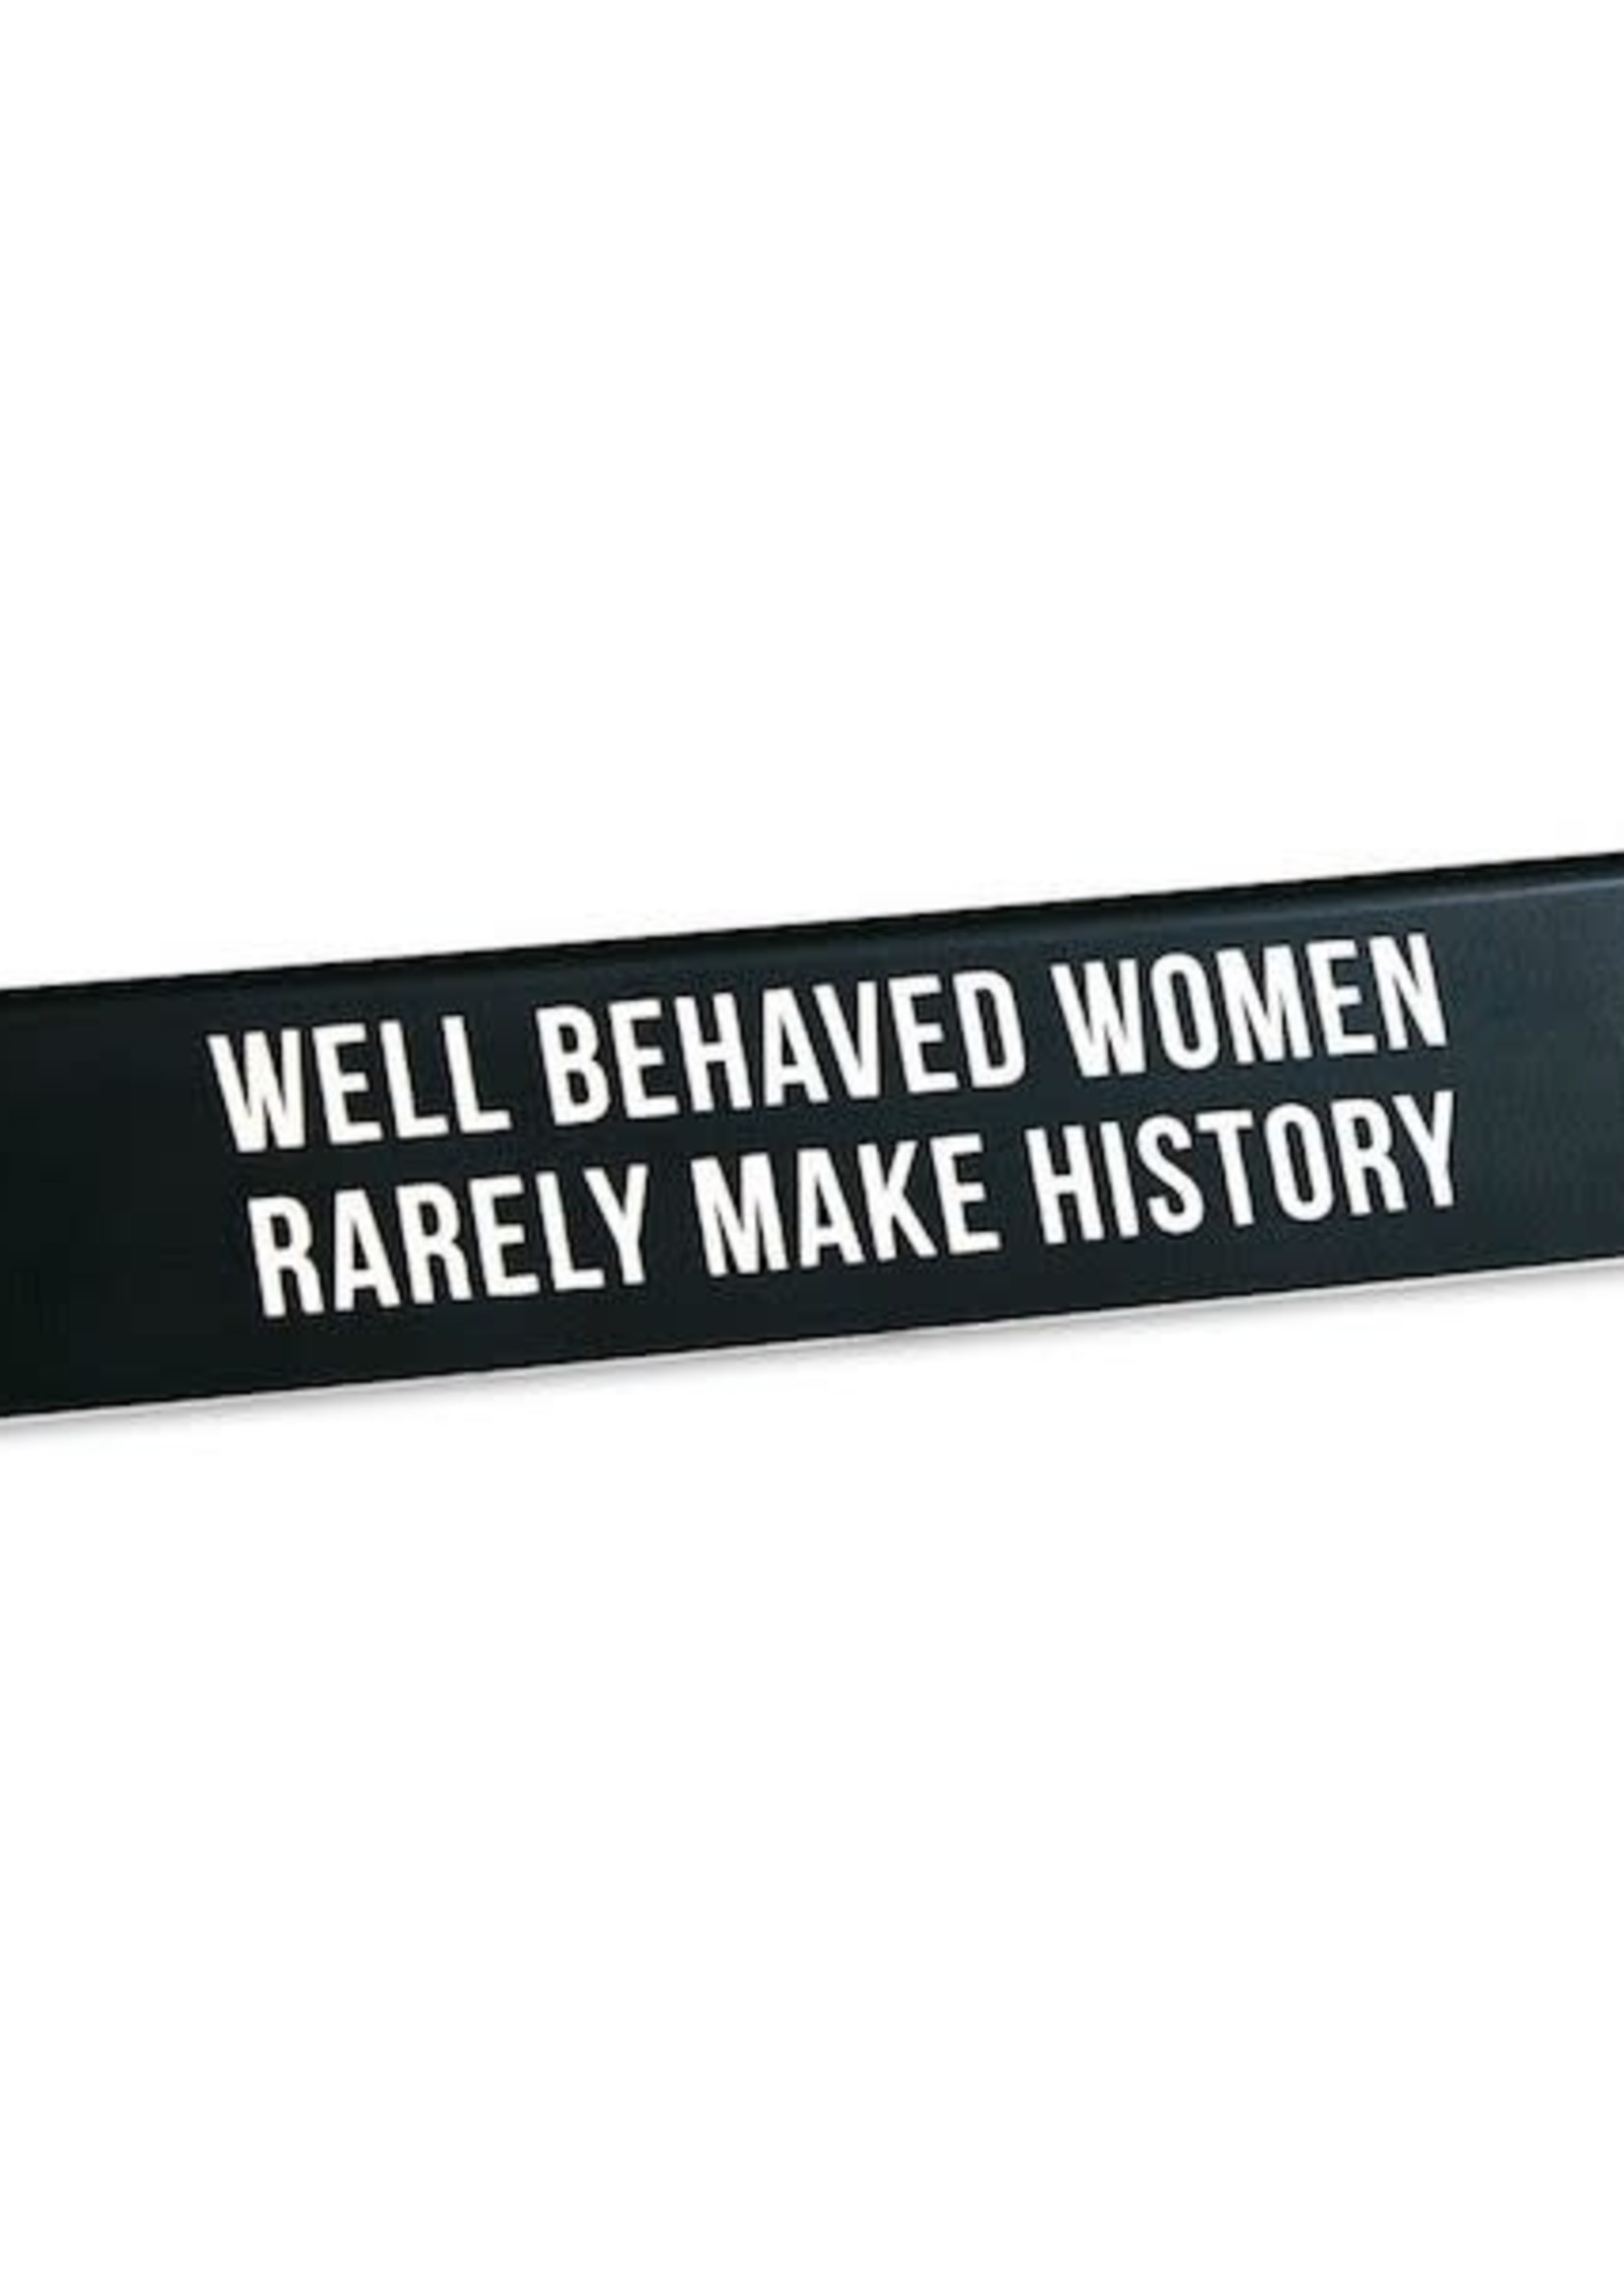 THE FOUND THE FOUND WELL BEHAVED WOMEN DESK SIGN